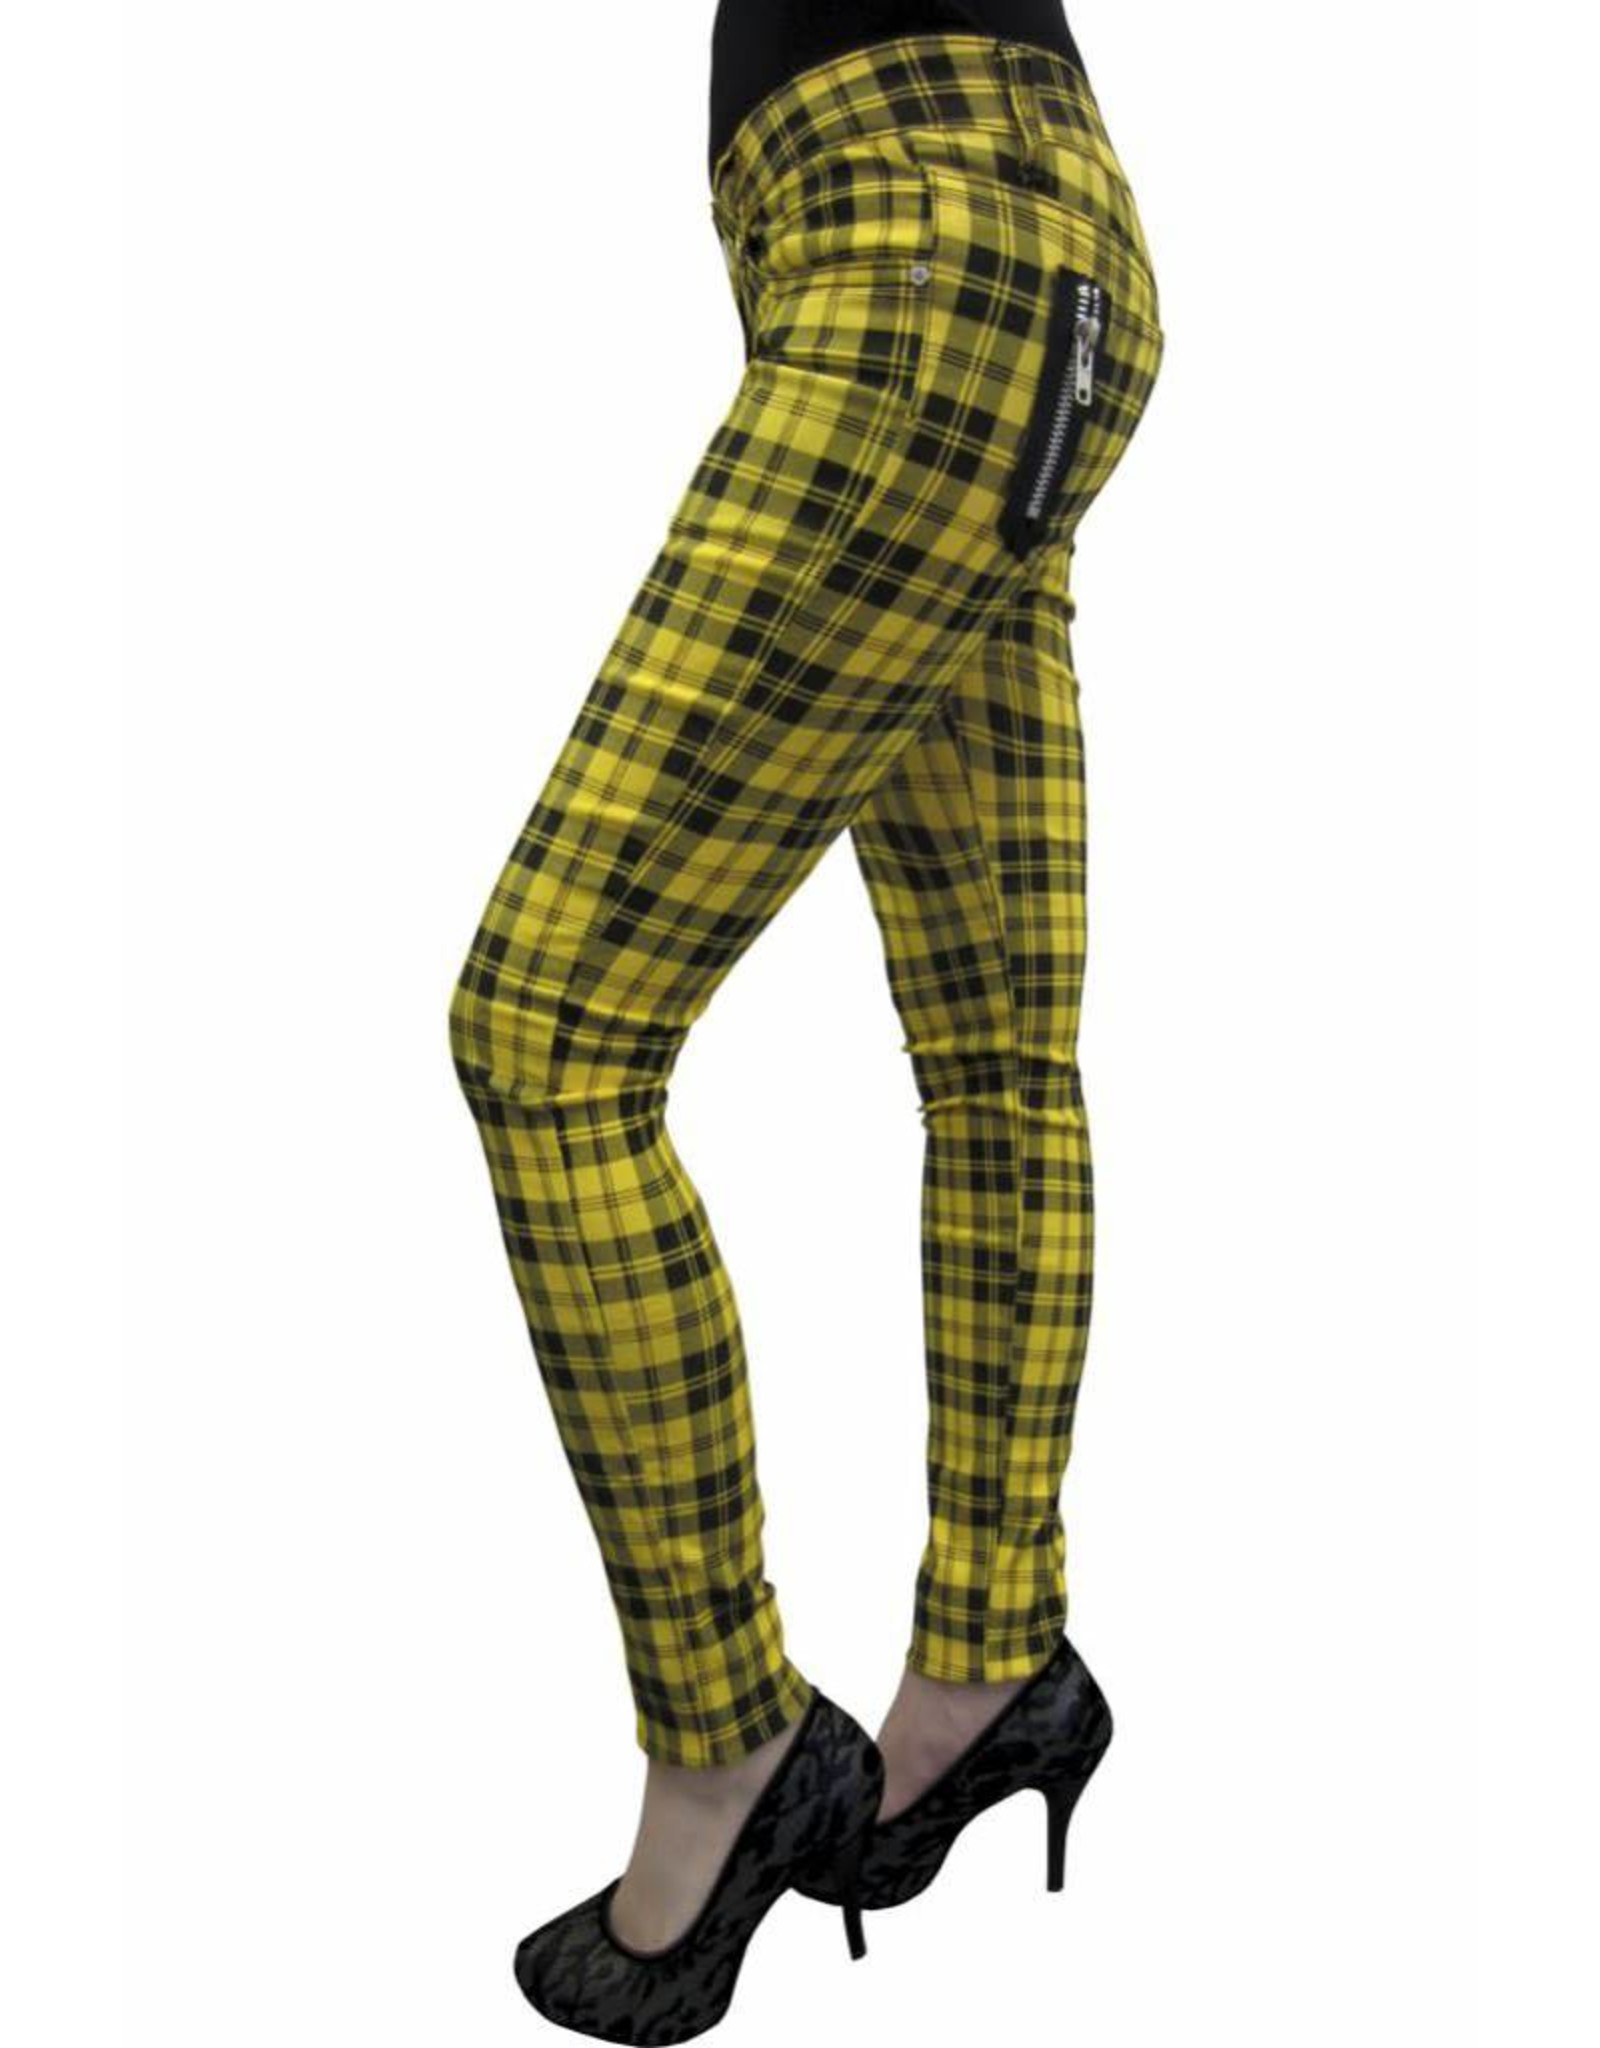 BANNED - Yellow Checkered Pants